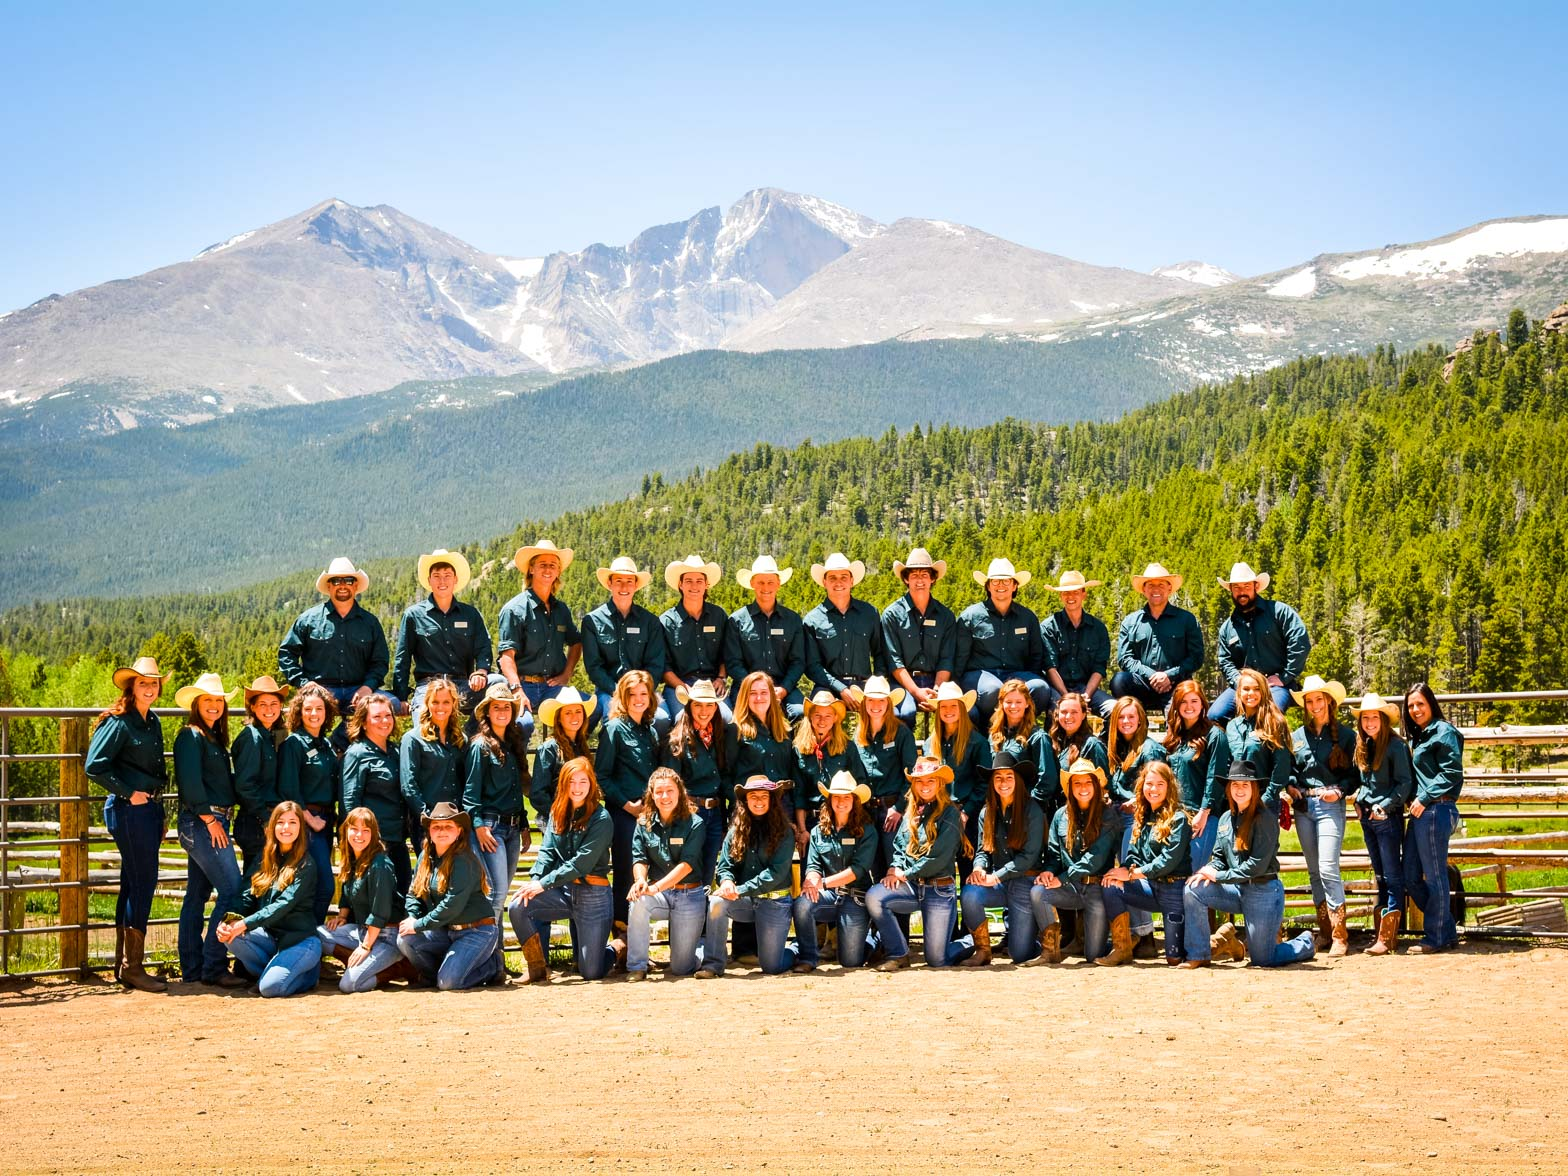 Group photo of young camp staff members in front of a beautiful mountainous landscape.